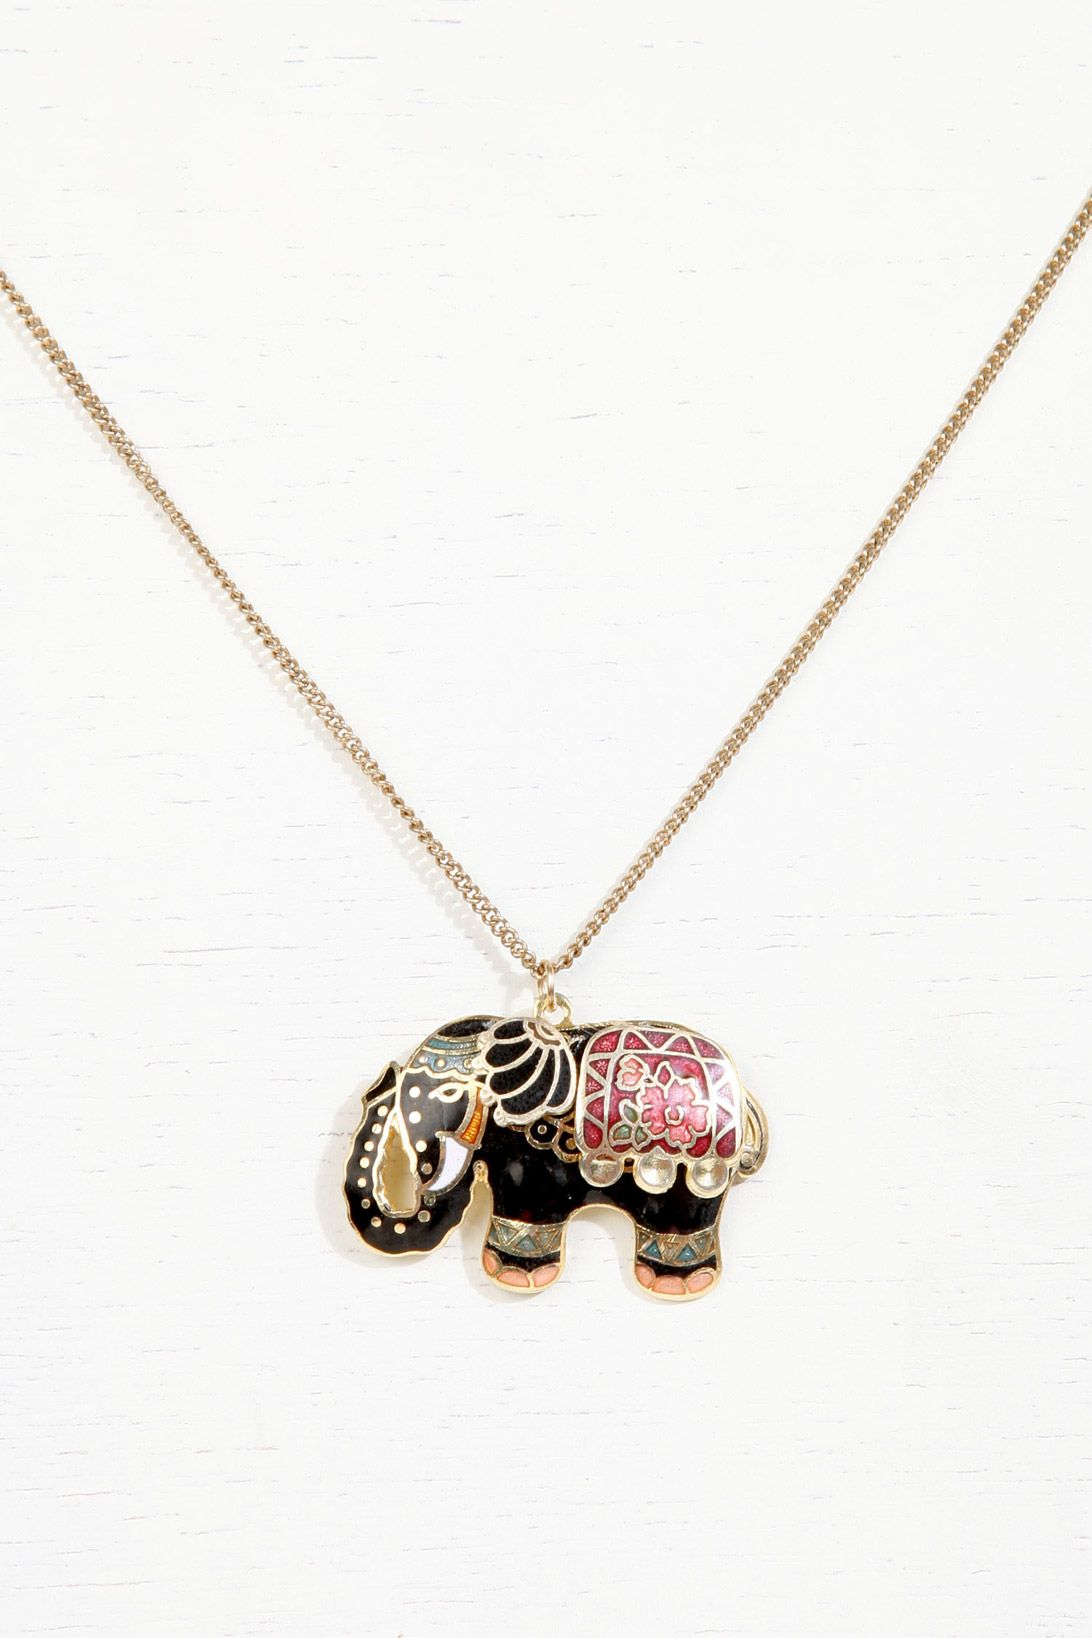 Enamel Elephant Pendant Necklace at Urban Outfitters